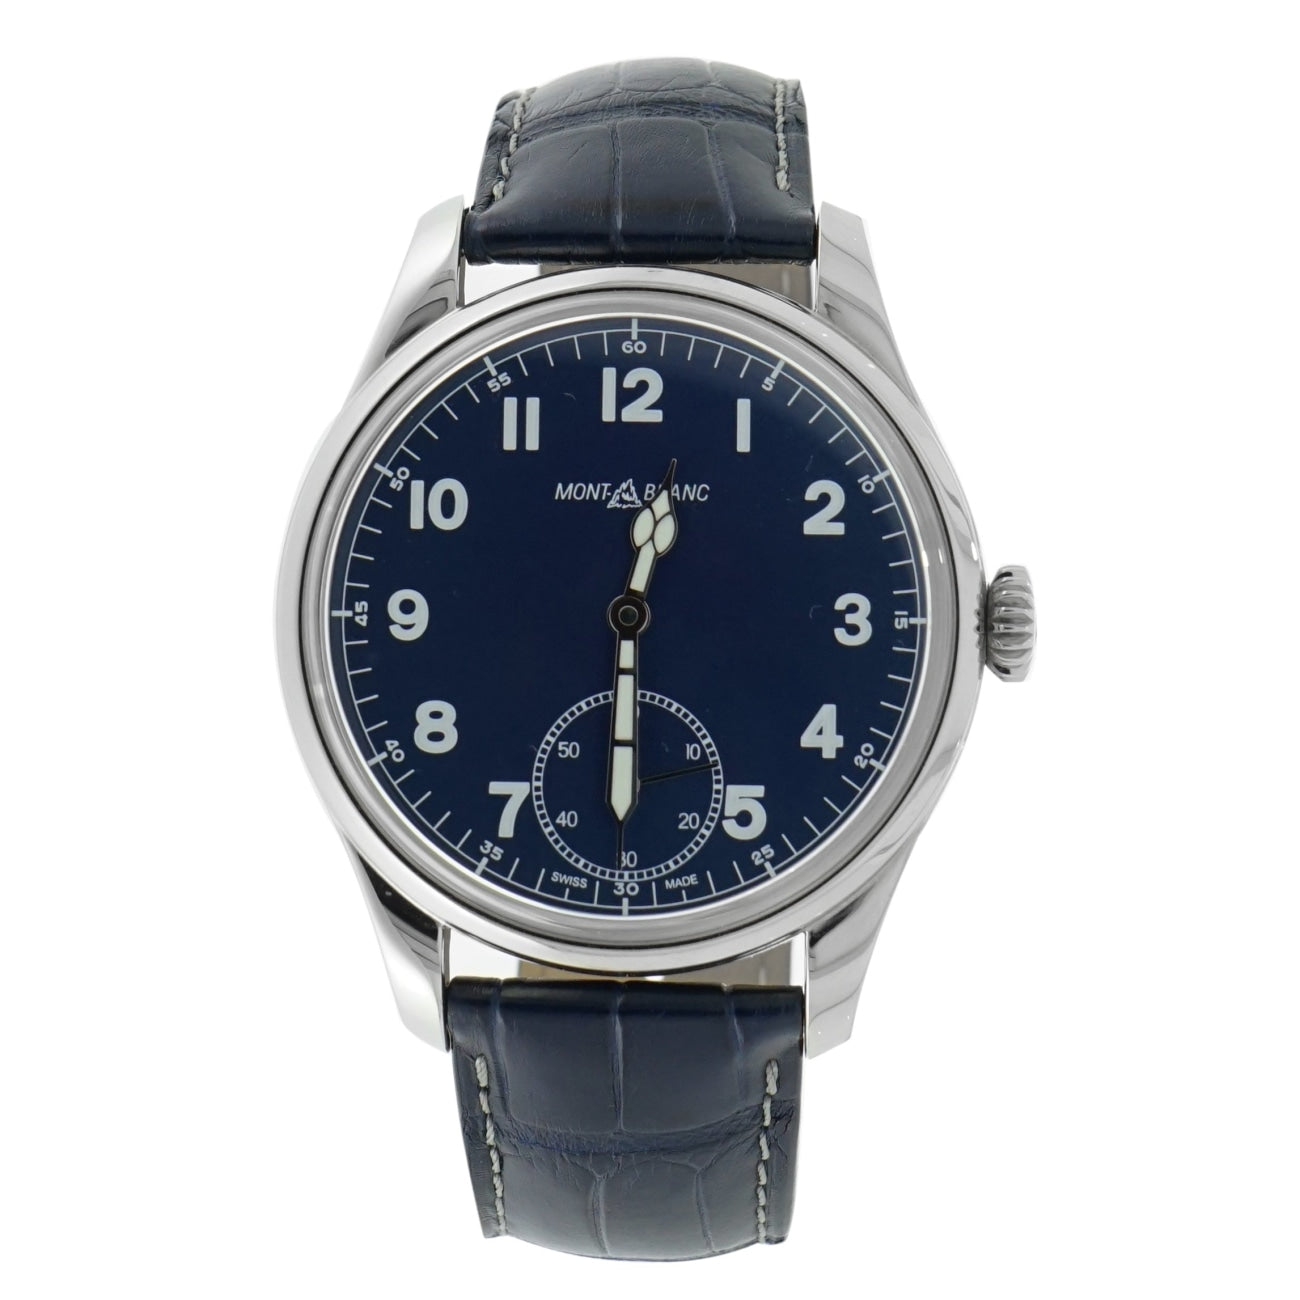 Pre-Owned Montblanc Watches - 1858 Small Second | Manfredi Jewels